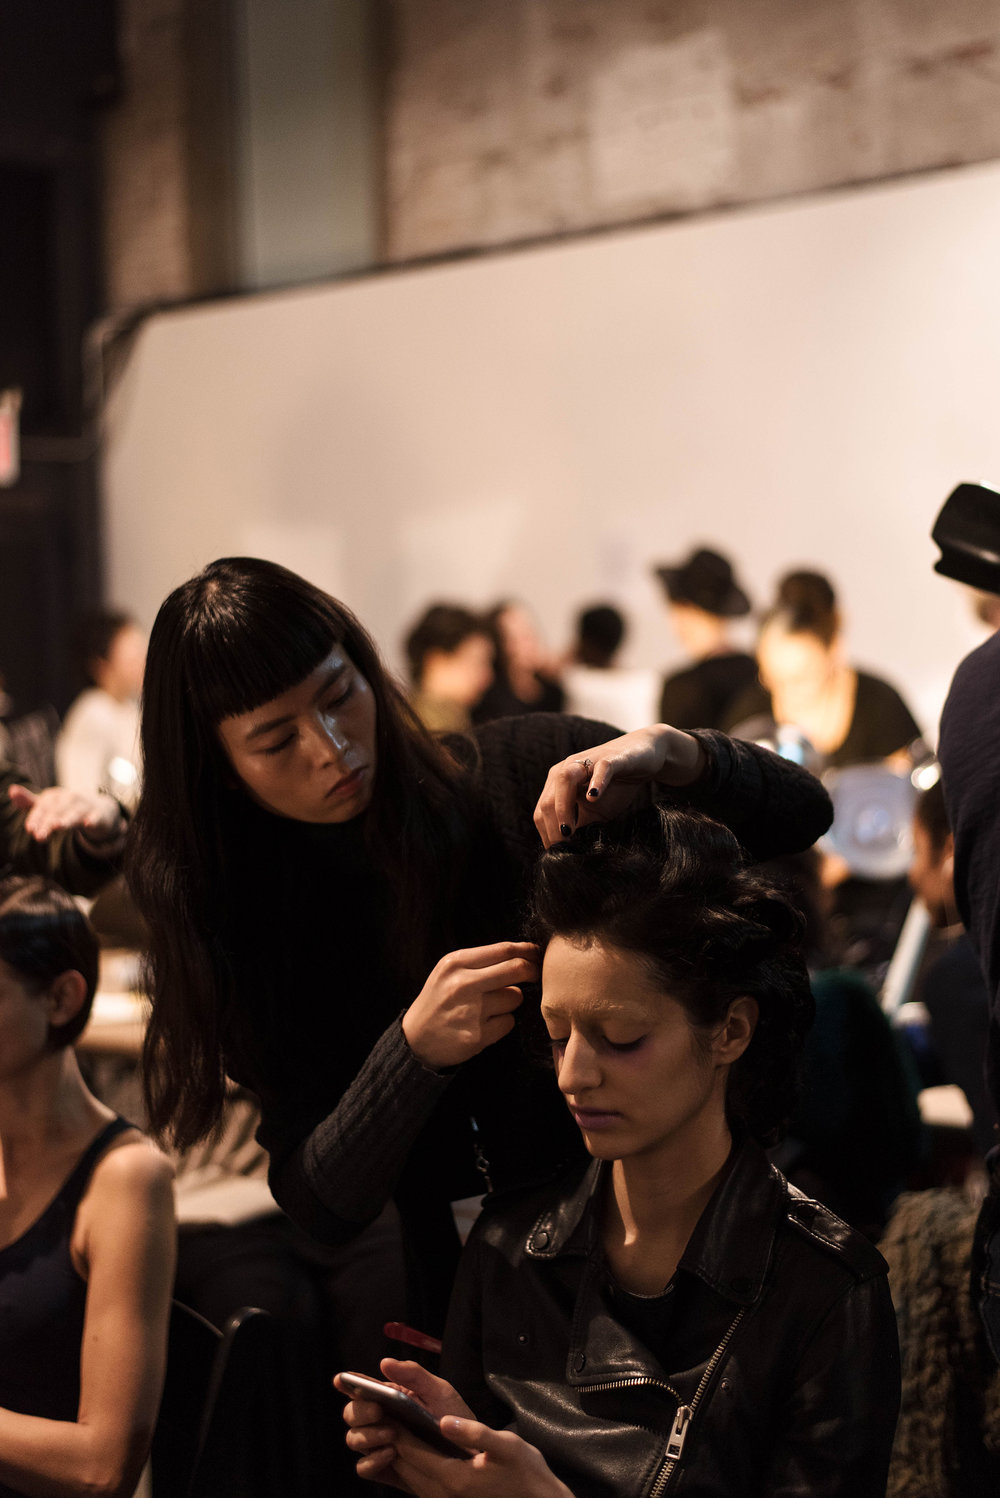 nyfw-backstage-fashion-photographer.jpg